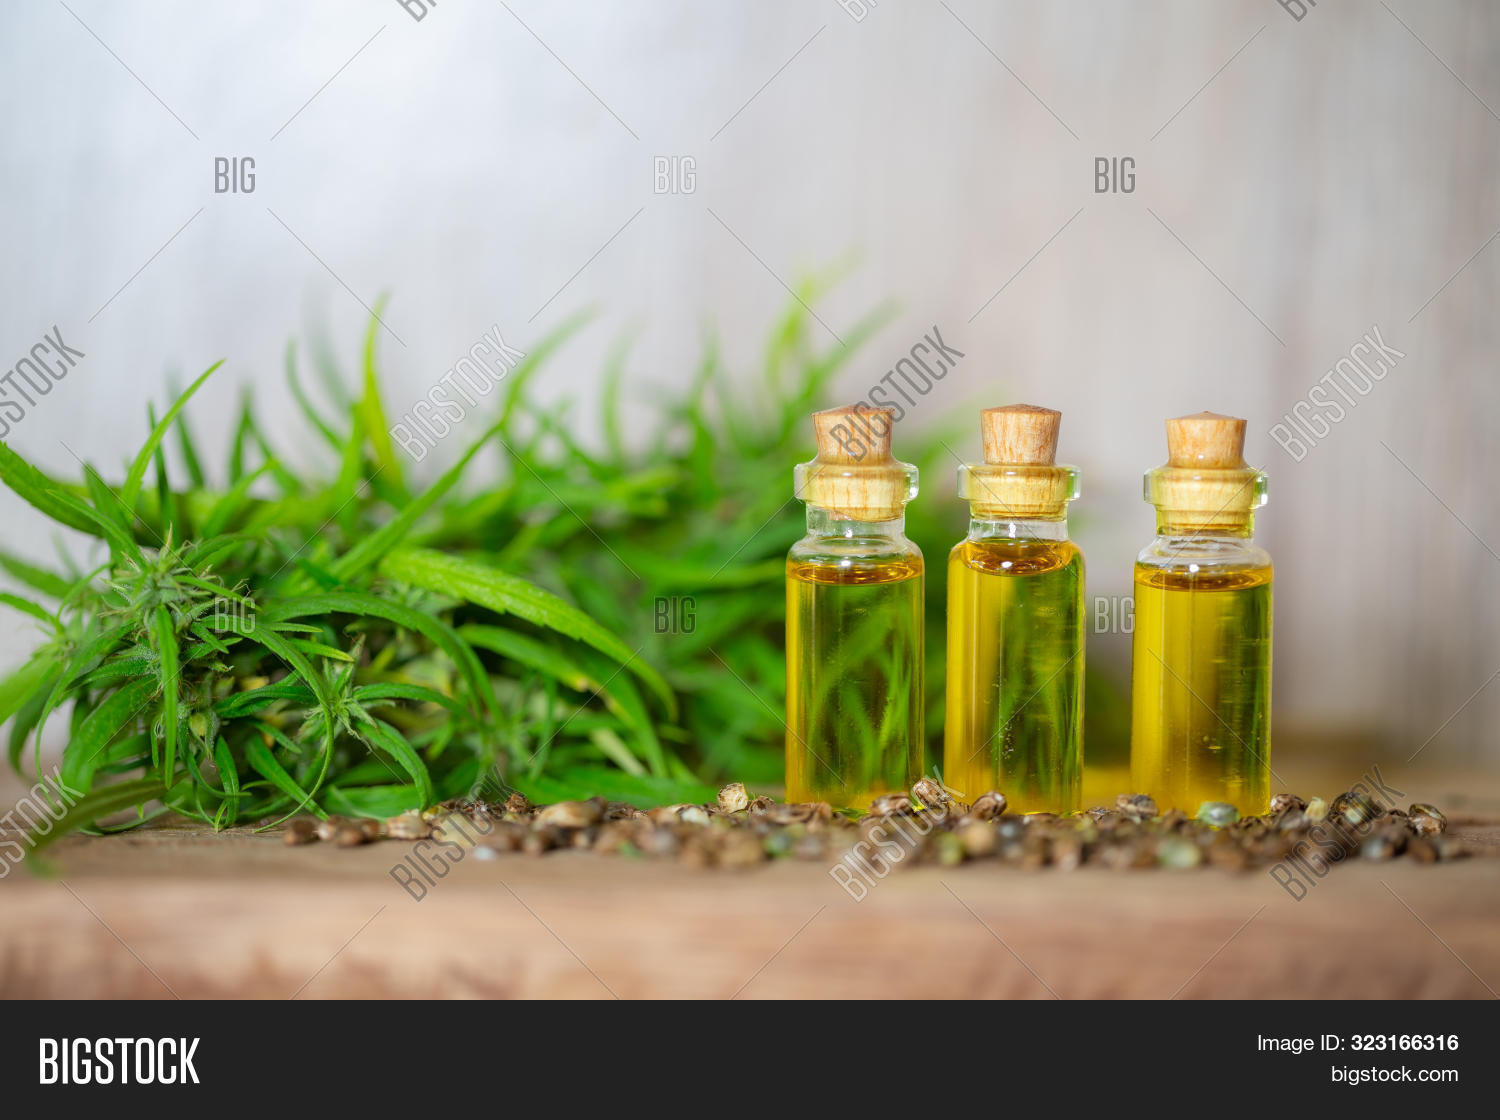 agriculture,alternative,apothecary,background,bottle,bud,cannabis,capsules,cbd,closeup,culture,dropper,drug,essential,extract,extraction,food,fresh,ganja,glass,green,grow,health,healthy,hemp,herb,herbal,jar,leaf,leaves,legal,macro,marijuana,medical,medicinal,medicine,natural,nature,oil,organic,plant,pot,product,spoon,thc,weed,white,wooden